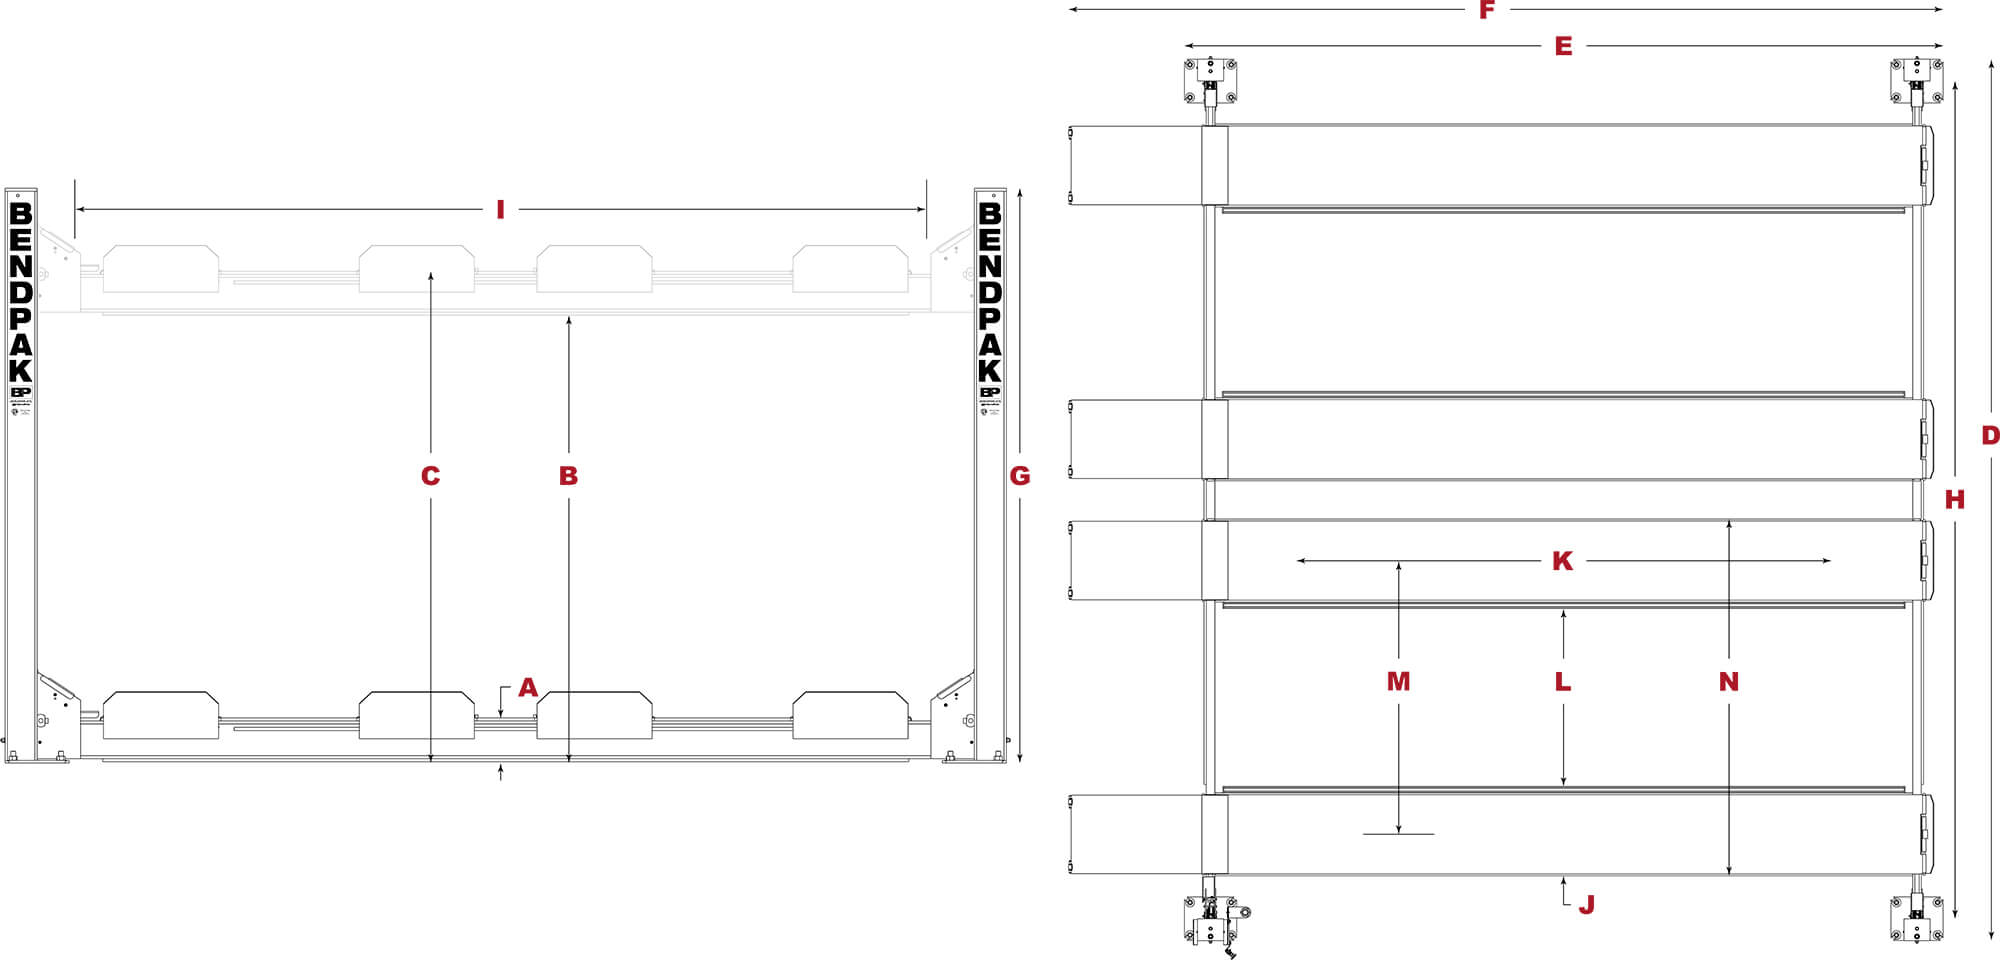 bendpak-hd-9sw-double-wide-four-post-lift-specifcations-diagram.jpg